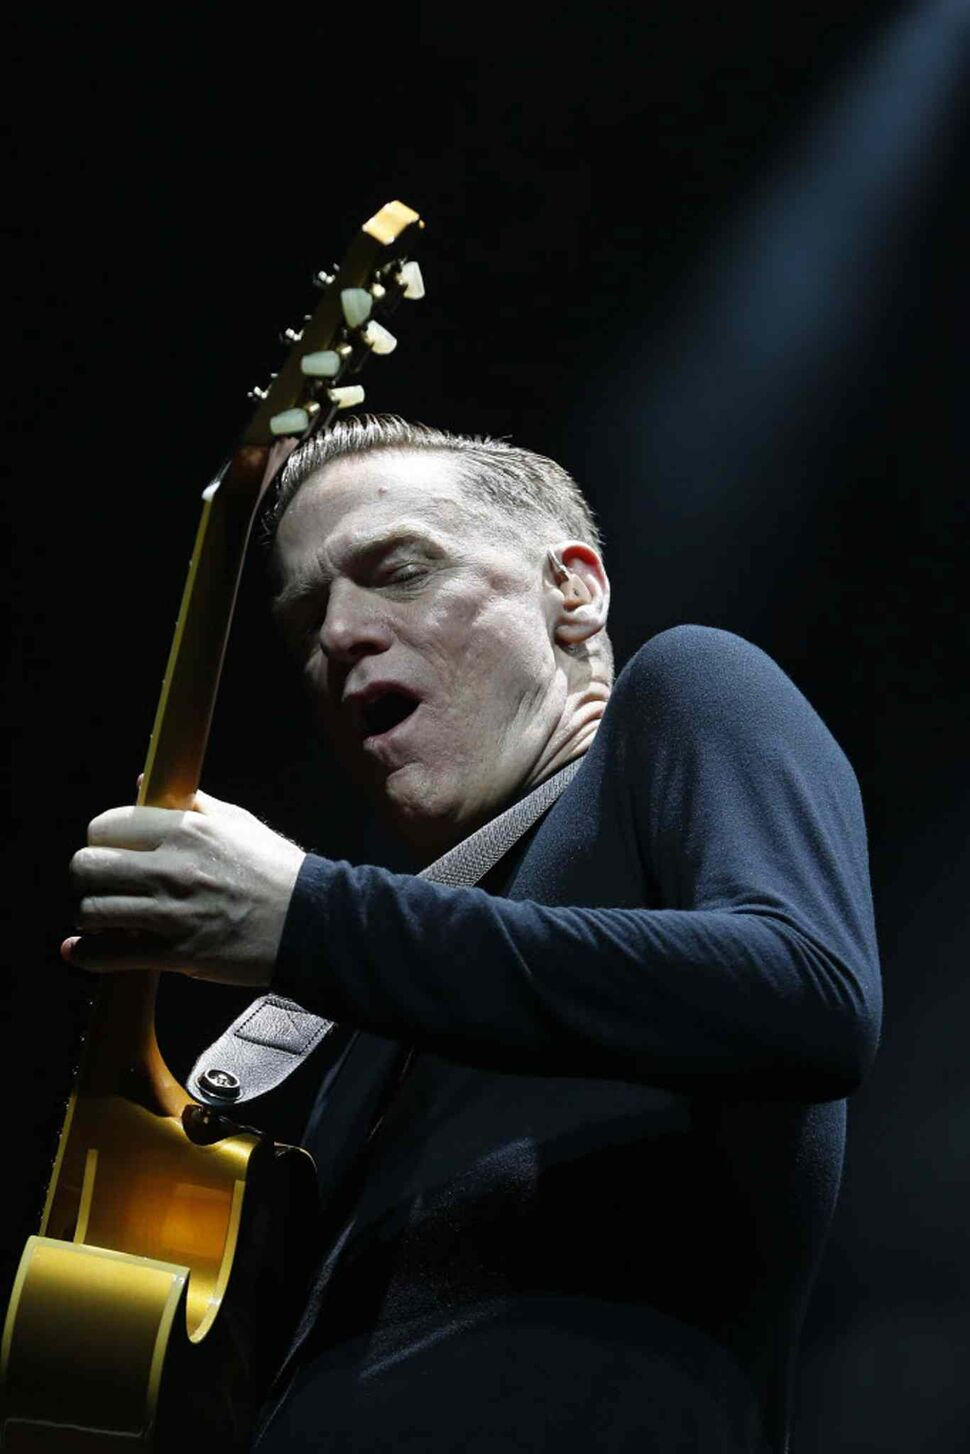 Bryan Adams rocks out on his acoustic guitar at the MTS Centre Tuesday.  (John Woods / Winnipeg Free Press)